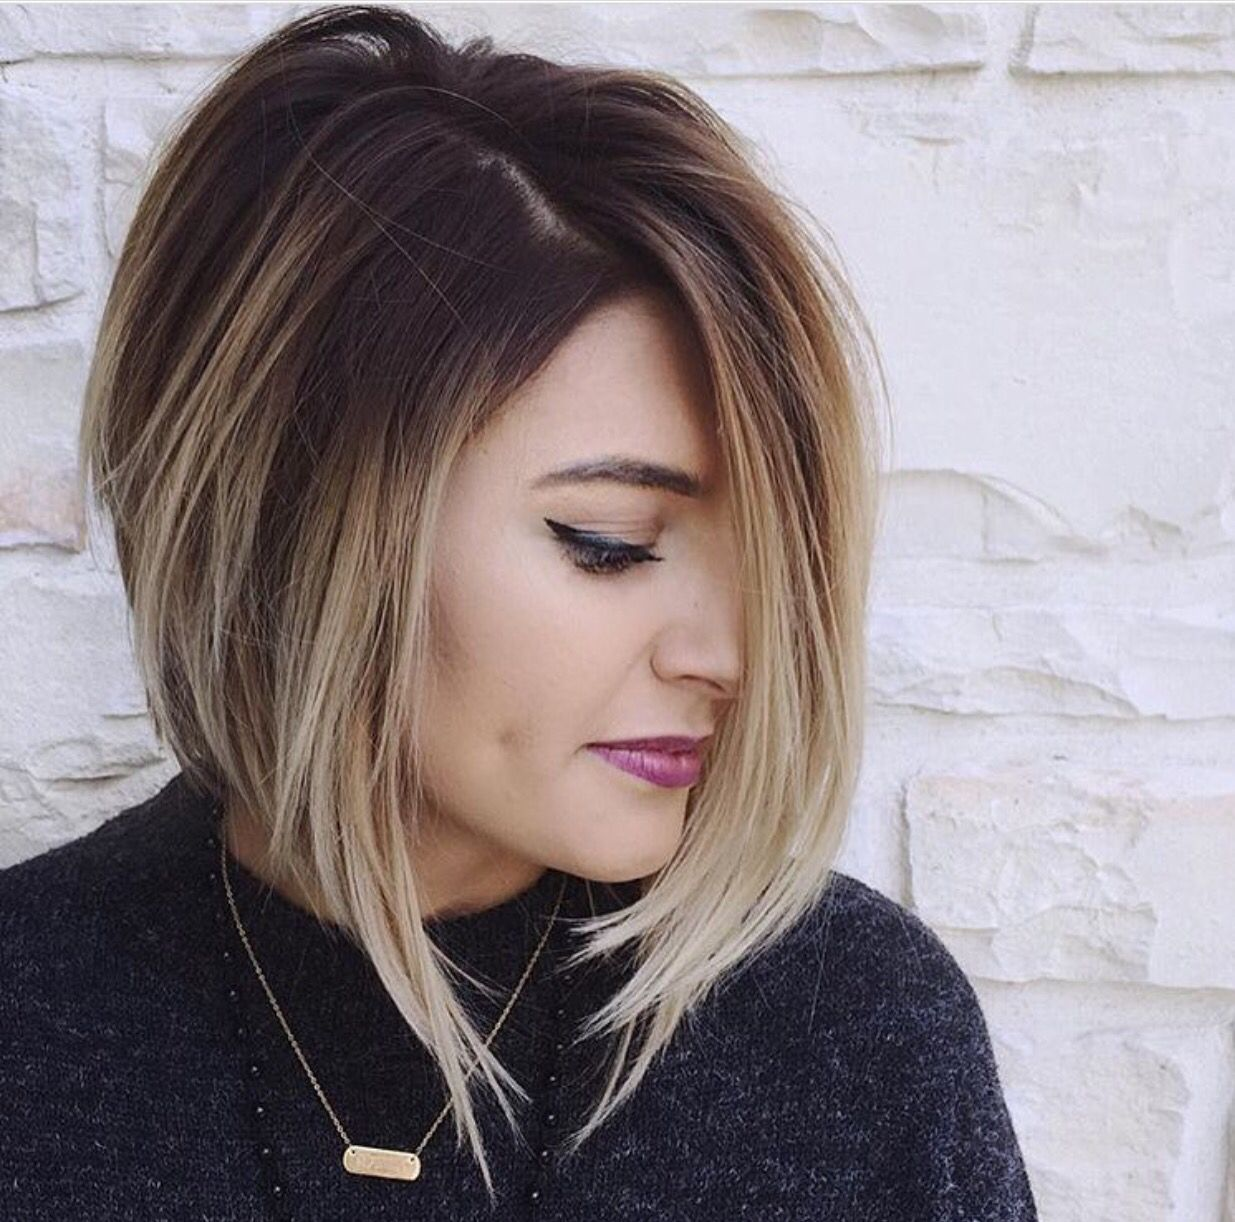 31 Short Bob Hairstyles to Inspire Your Next Look | Balayage ...